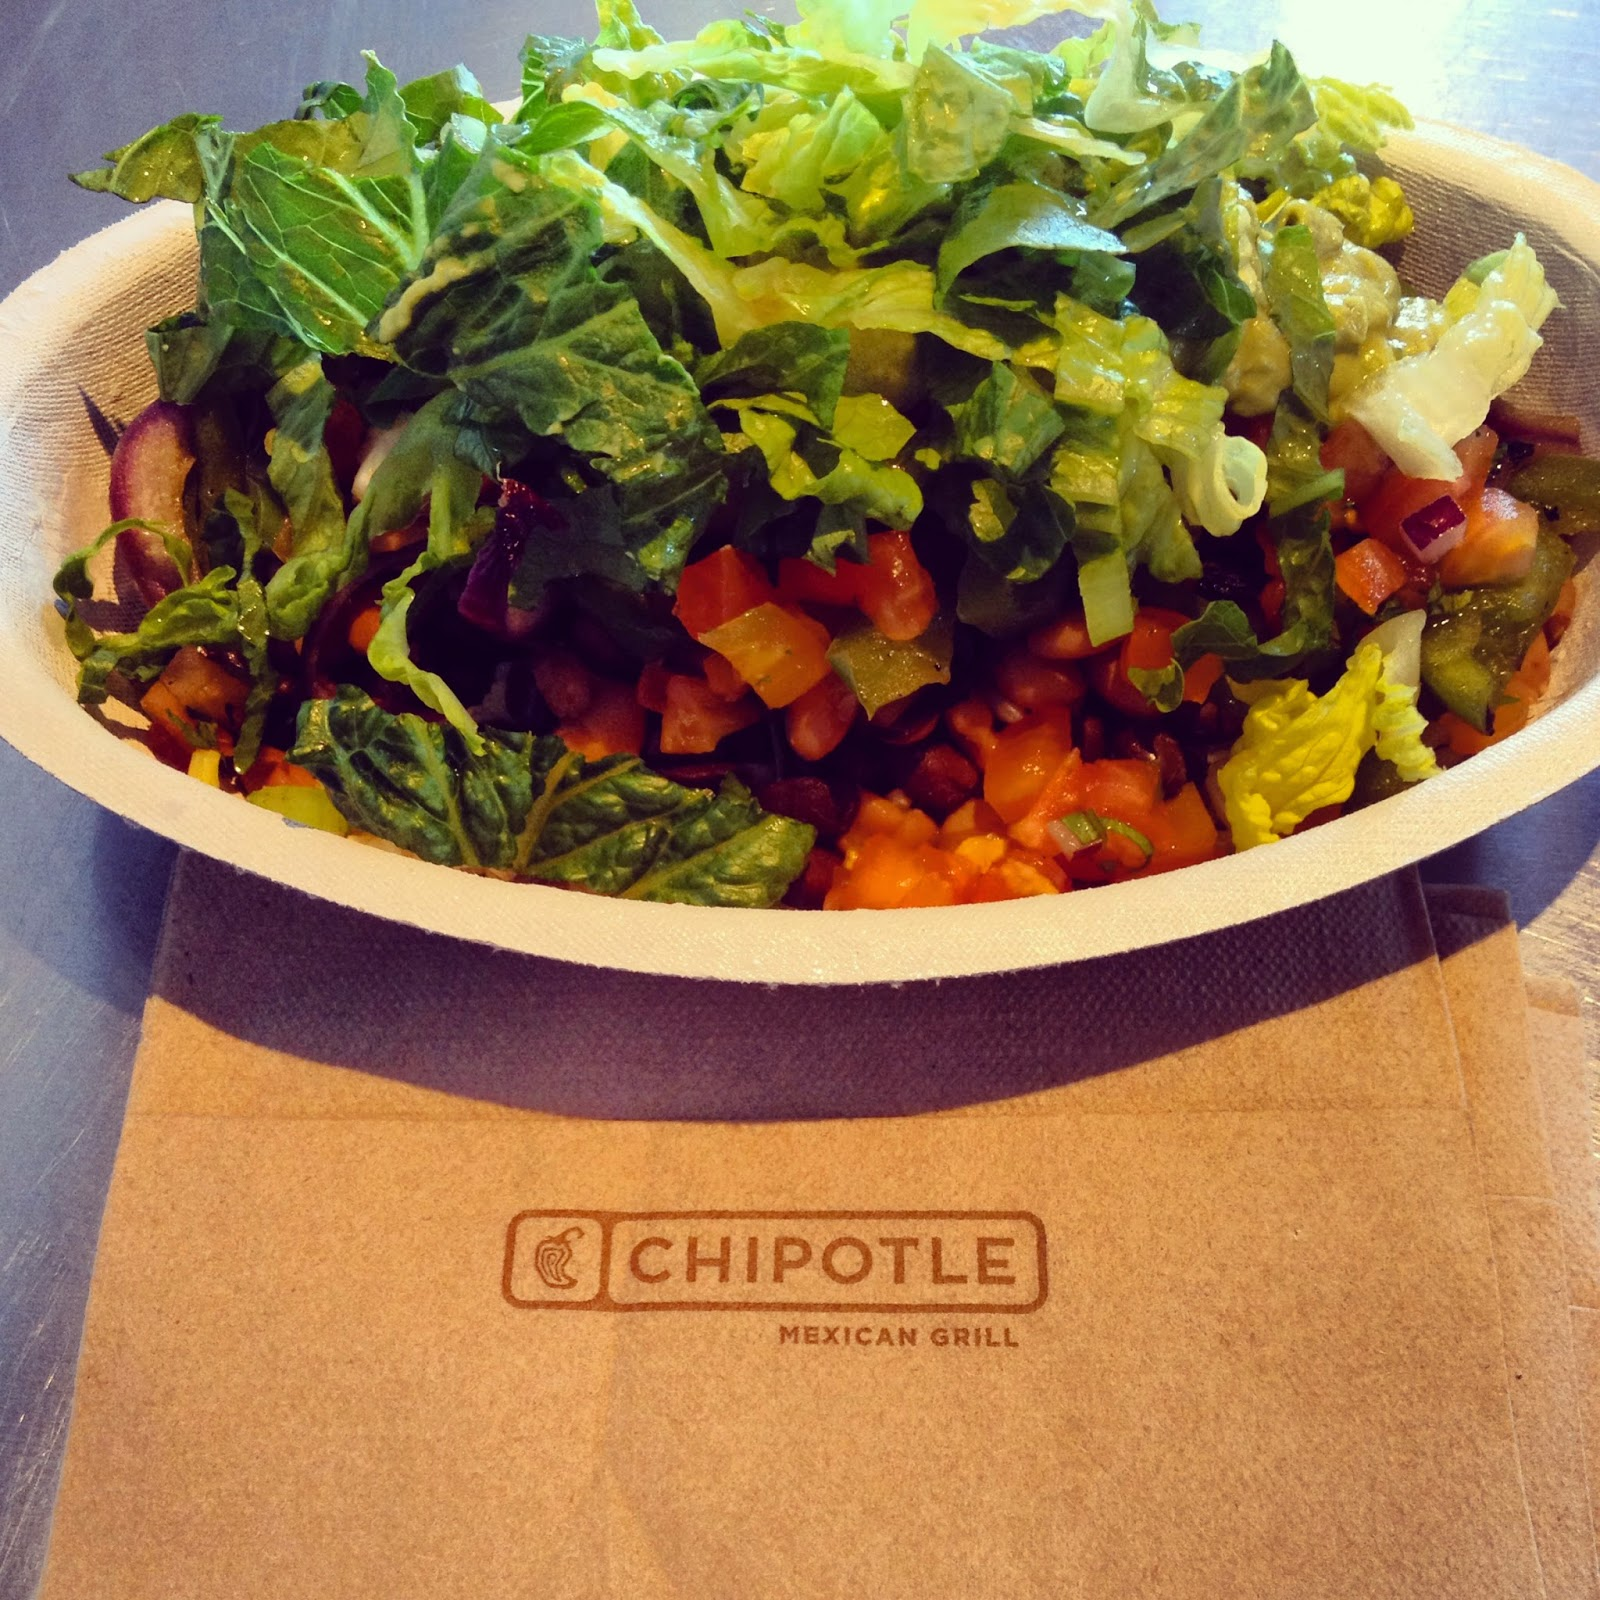 Chipotle Vegan Vegetarian Burrito Bowl